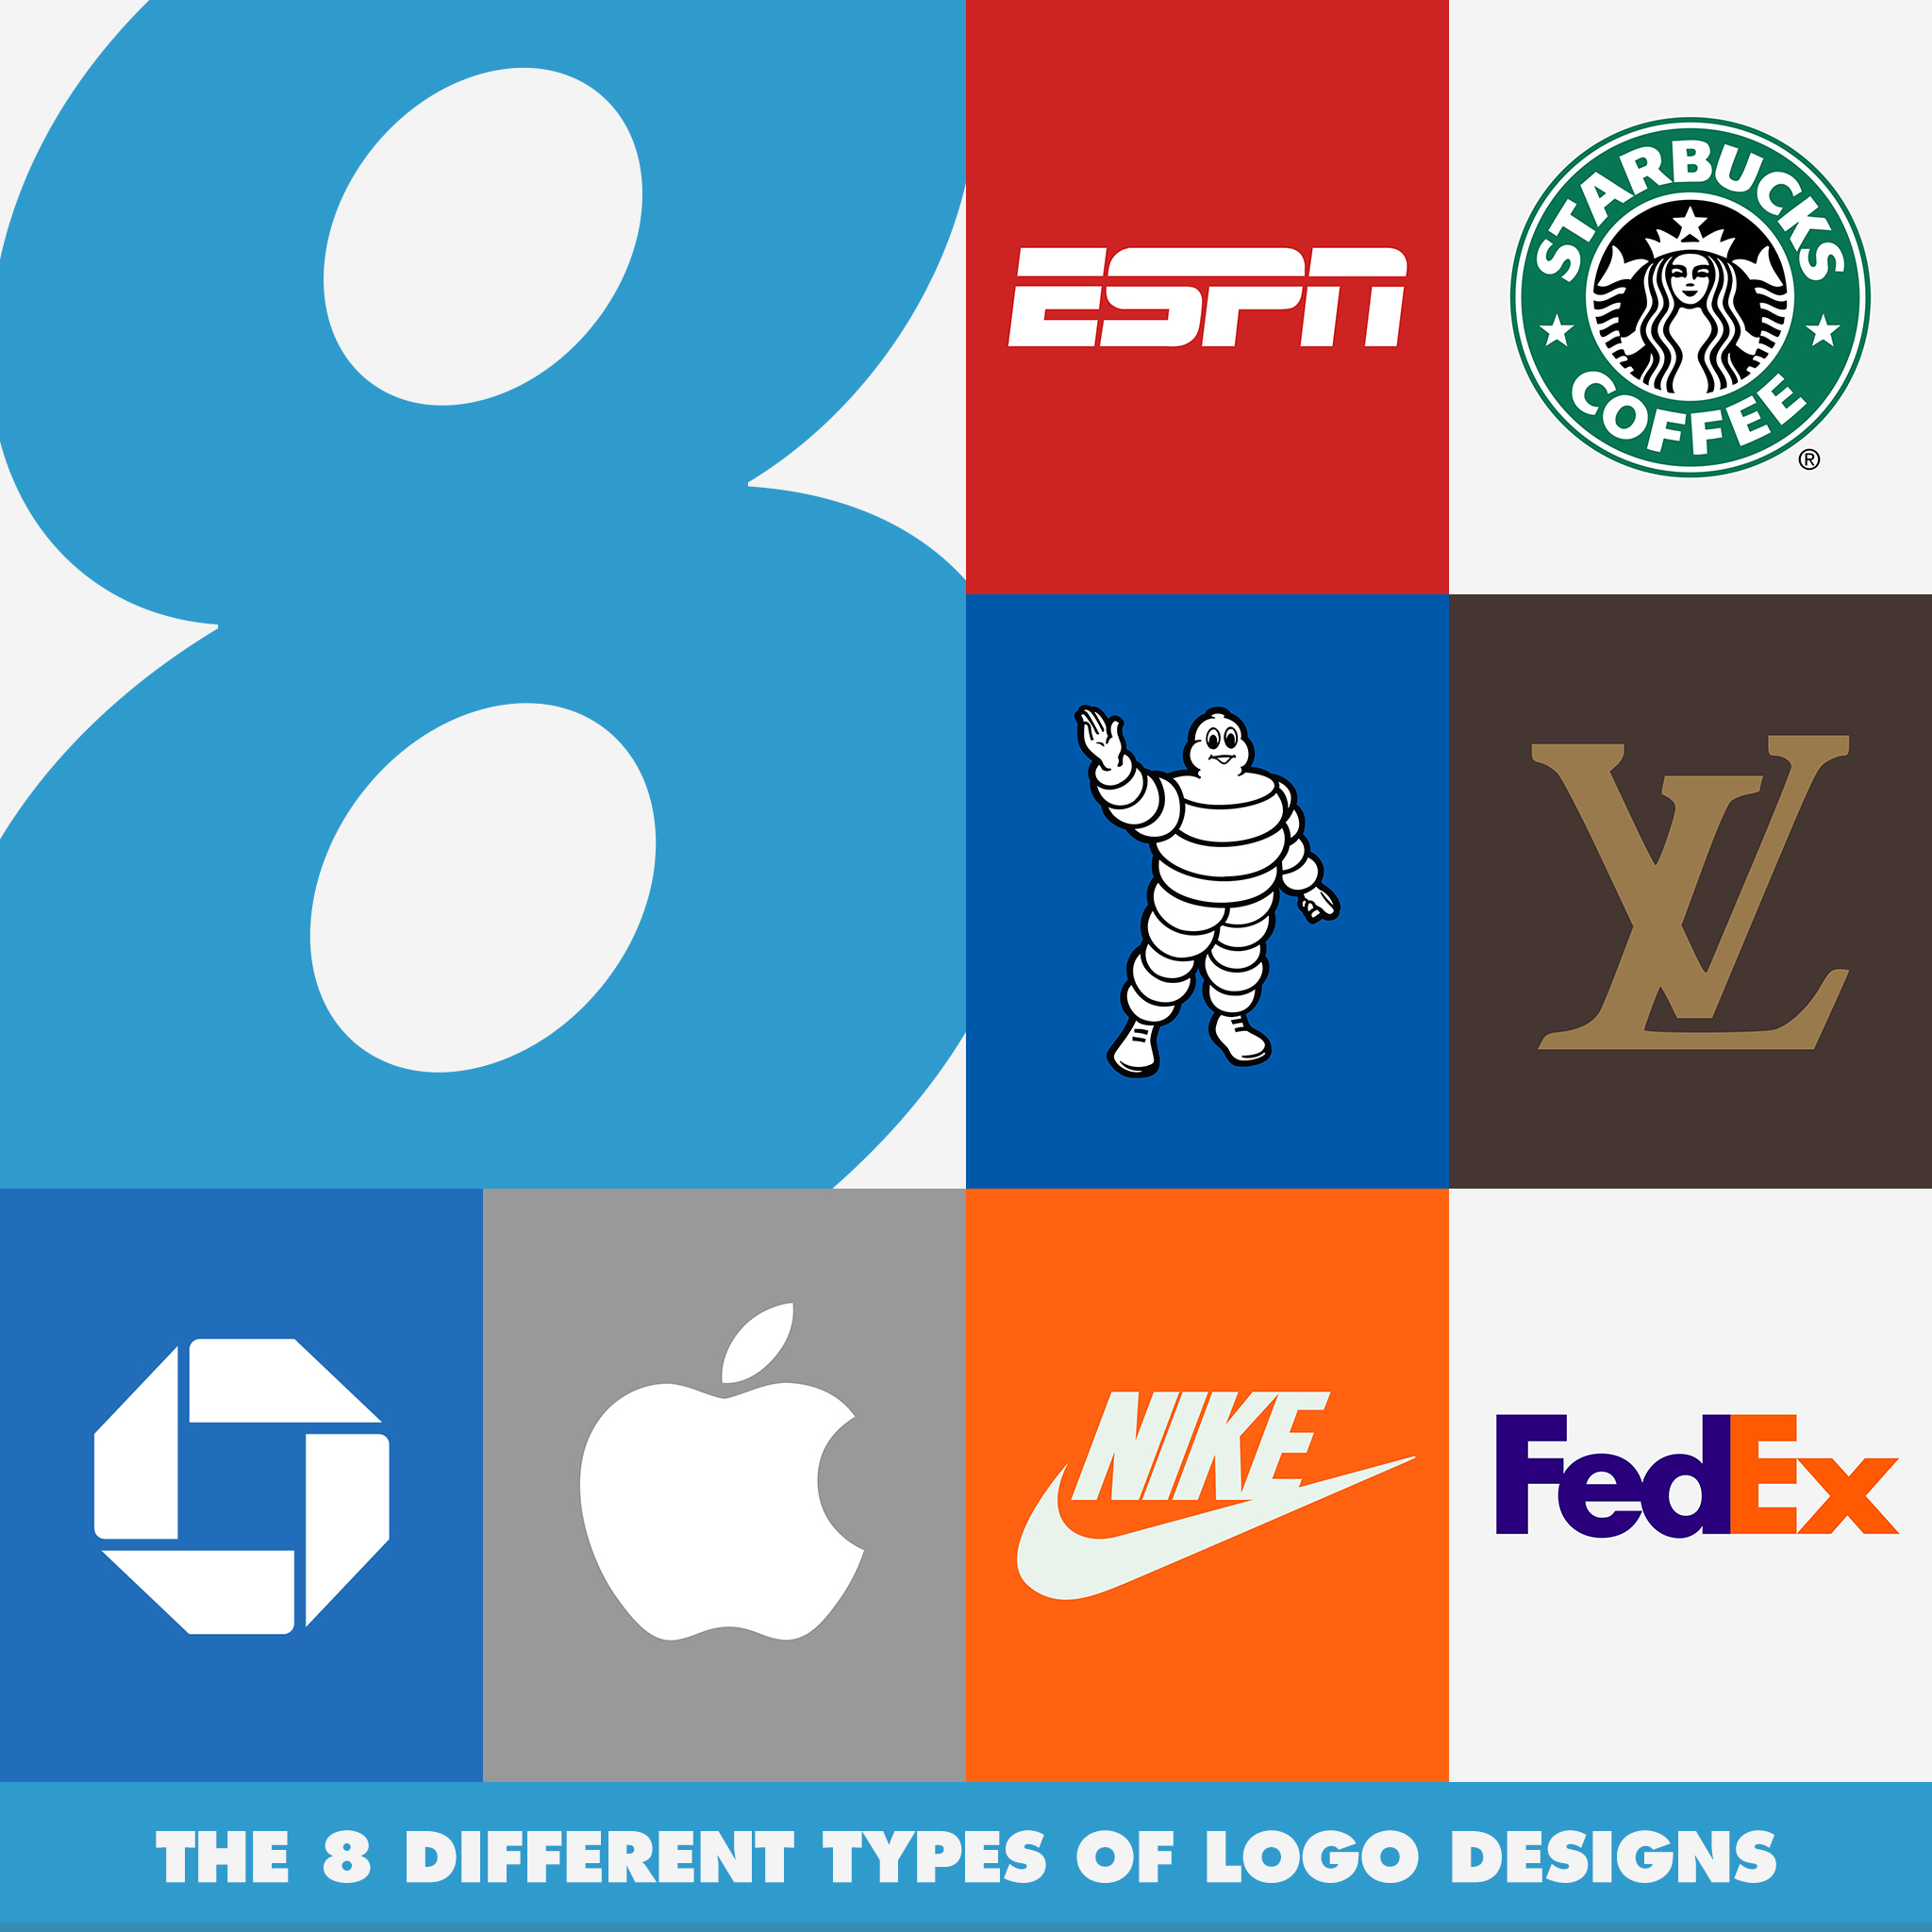 Different Types of Logos2.jpg